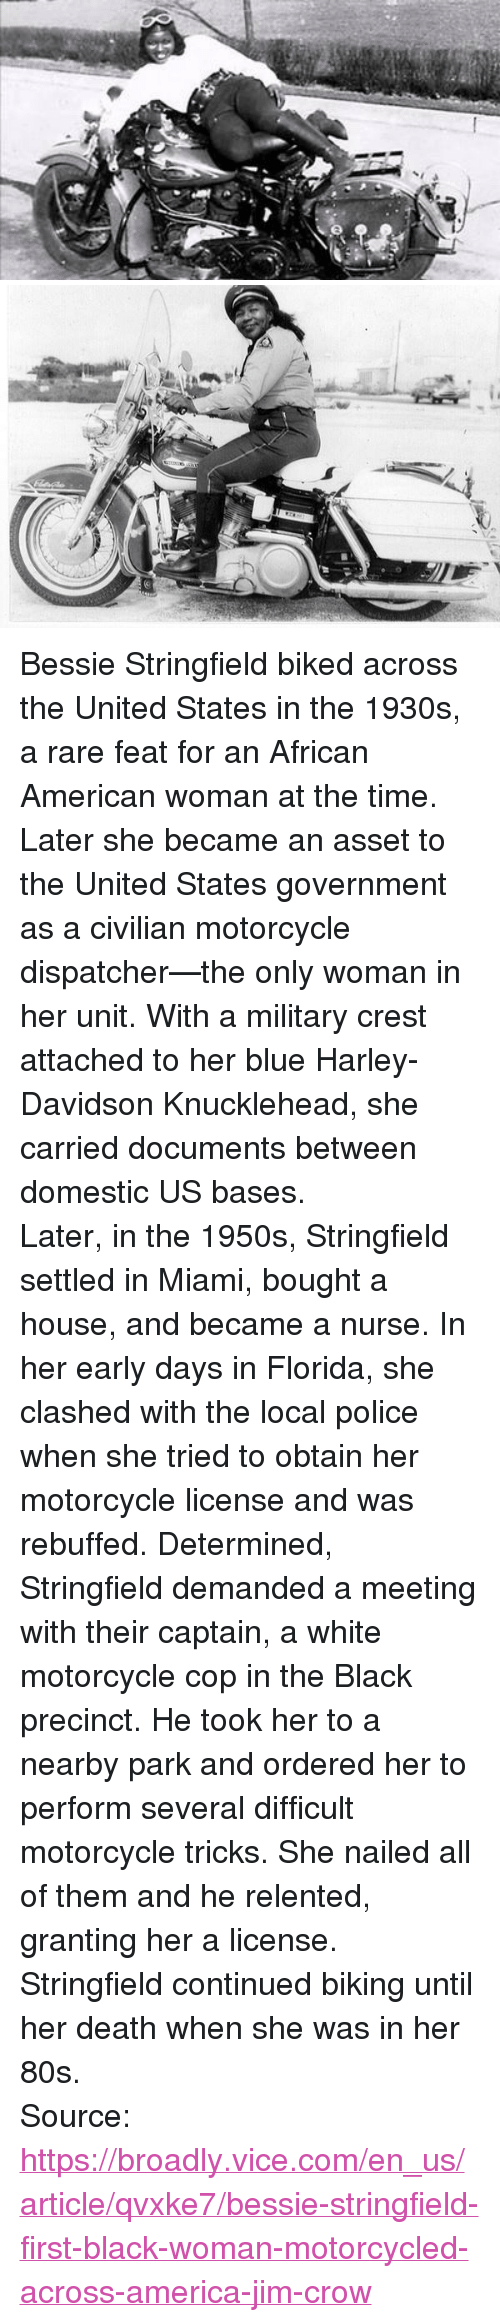 """asset: <p>Bessie Stringfield biked across the United States in the 1930s, a rare feat for an African American woman at the time. Later she became an asset to the United States government as a civilian motorcycle dispatcher—the only woman in her unit. With a military crest attached to her blue Harley-Davidson Knucklehead, she carried documents between domestic US bases.</p>  <p>Later, in the 1950s, Stringfield settled in Miami, bought a house, and became a nurse. In her early days in Florida, she clashed with the local police when she tried to obtain her motorcycle license and was rebuffed. Determined, Stringfield demanded a meeting with their captain, a white motorcycle cop in the Black precinct. He took her to a nearby park and ordered her to perform several difficult motorcycle tricks. She nailed all of them and he relented, granting her a license.</p>  <p>Stringfield continued biking until her death when she was in her 80s.</p>  Source: <a href=""""https://broadly.vice.com/en_us/article/qvxke7/bessie-stringfield-first-black-woman-motorcycled-across-america-jim-crow"""">https://broadly.vice.com/en_us/article/qvxke7/bessie-stringfield-first-black-woman-motorcycled-across-america-jim-crow</a>"""